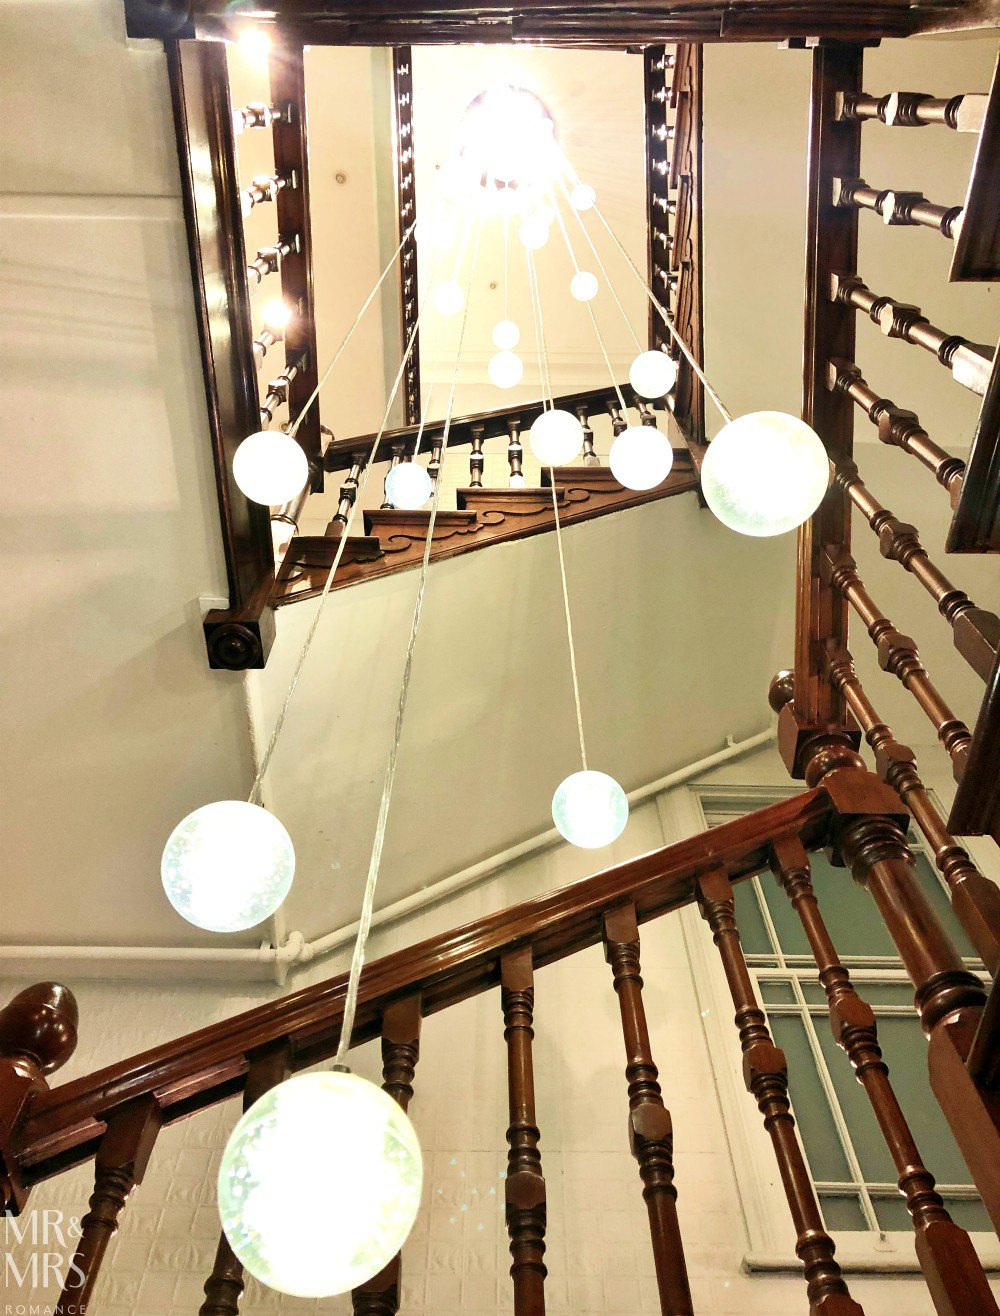 Exchange Hotel Balmain reopens - lights